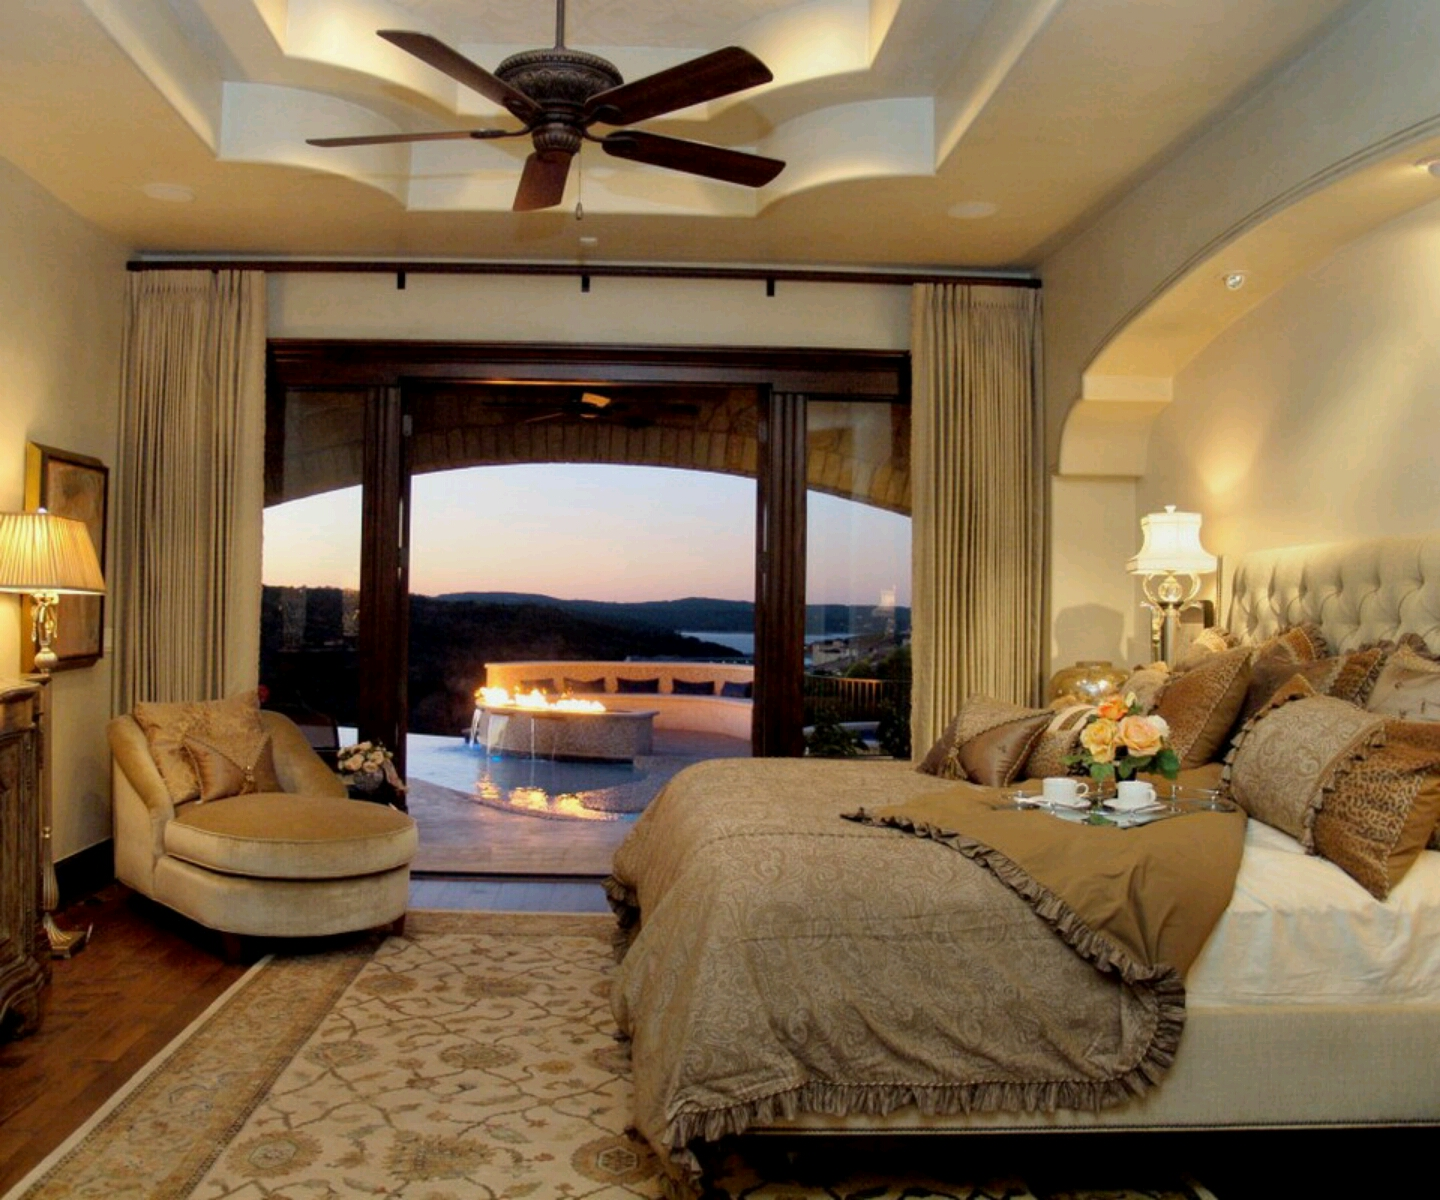 New home designs latest modern bedrooms designs ceiling for New bedroom designs pictures